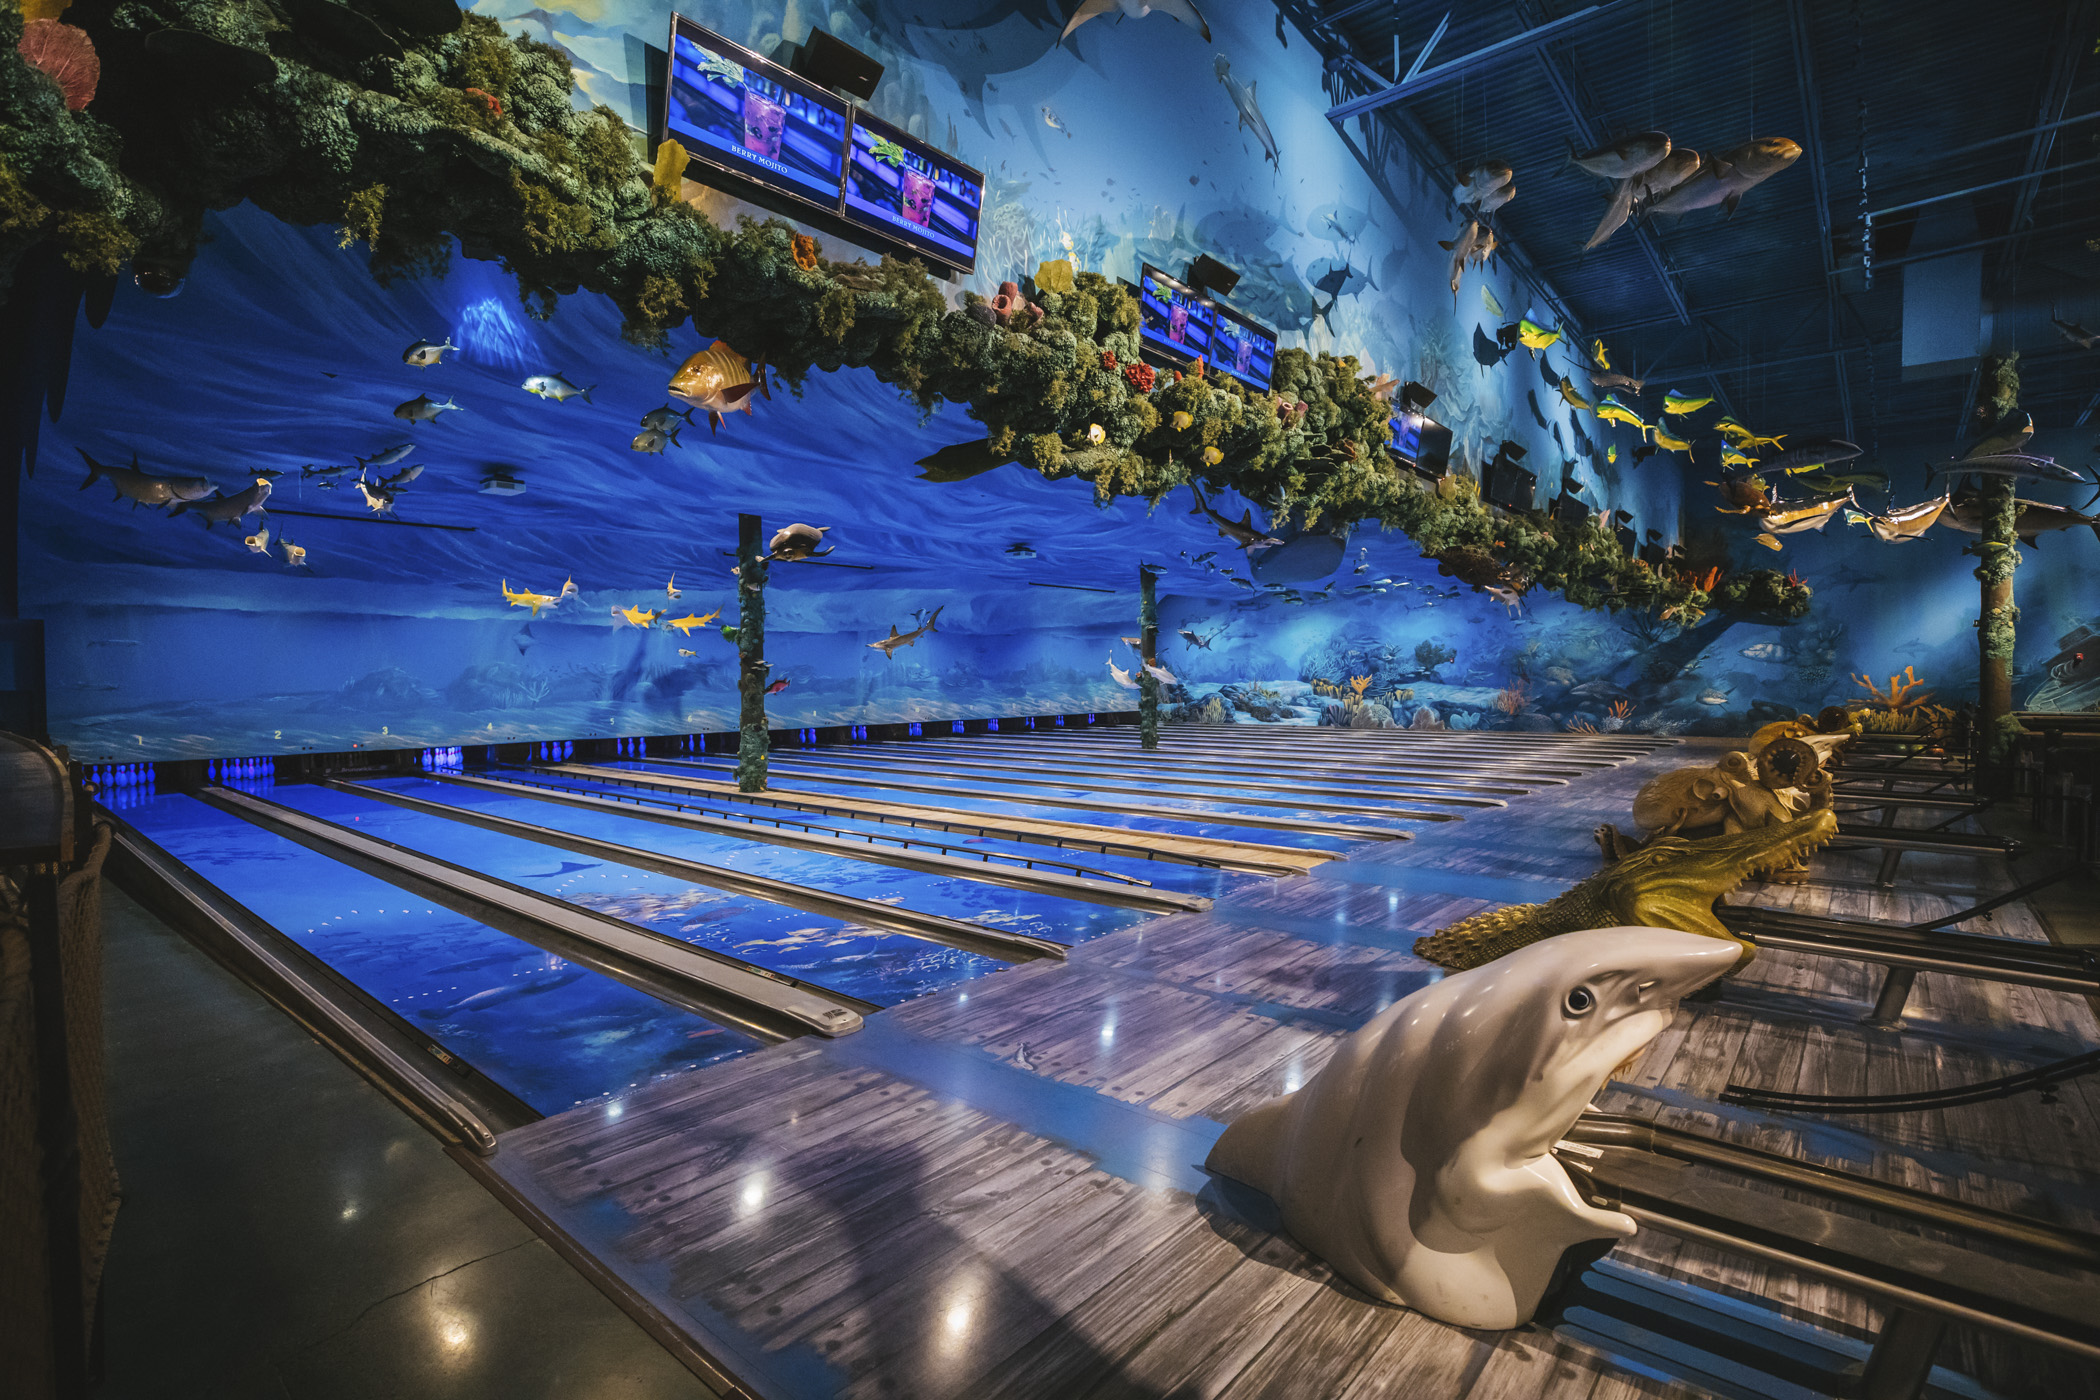 "Talk a-boat a catch! Uncle Buck's Fish Bowl & Grill is an ocean-themed restaurant & bowling alley in Tacoma, WA will truly knock your...galoshes off? With 12 full lanes of bowling, custom bowling balls like octopi, mermaids and camouflage, and wooden ""dock"" bowling lanes all surrounded by hand-painted murals of underwater scenery like sea turtles, sharks, stingrays, and fish hanging from the ceiling. If this sounds like the place for a party - you'd be right! You can rent out the Trophy Room for events. More info, hours and prices{&nbsp;}<a  href=""https://www.unclebucksfishbowlandgrill.com/"" target=""_blank"">online</a>. (Image: Sunita Martini / Seattle Refined){&nbsp;}"